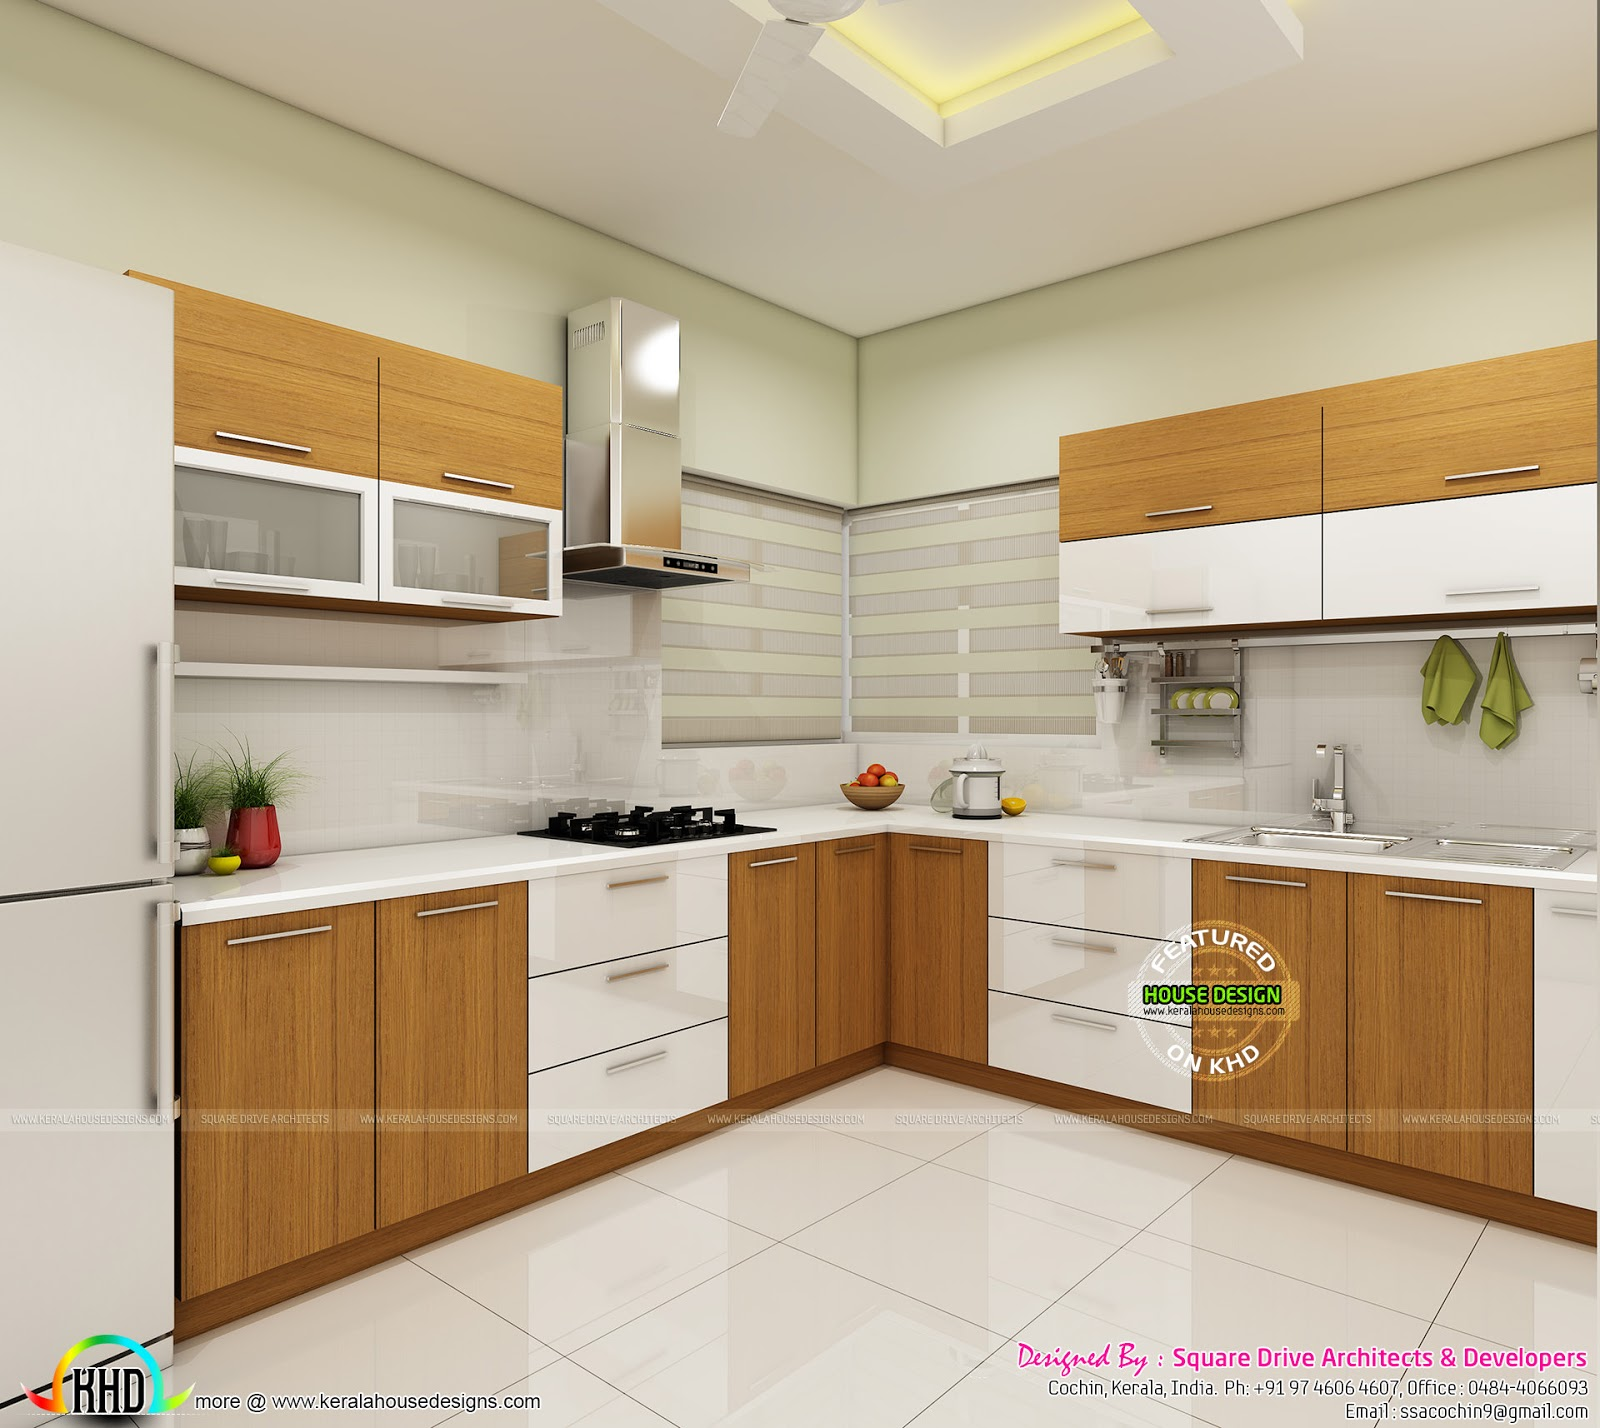 Modern home interiors of bedroom dining kitchen kerala for Interior design ideas for small homes in kerala